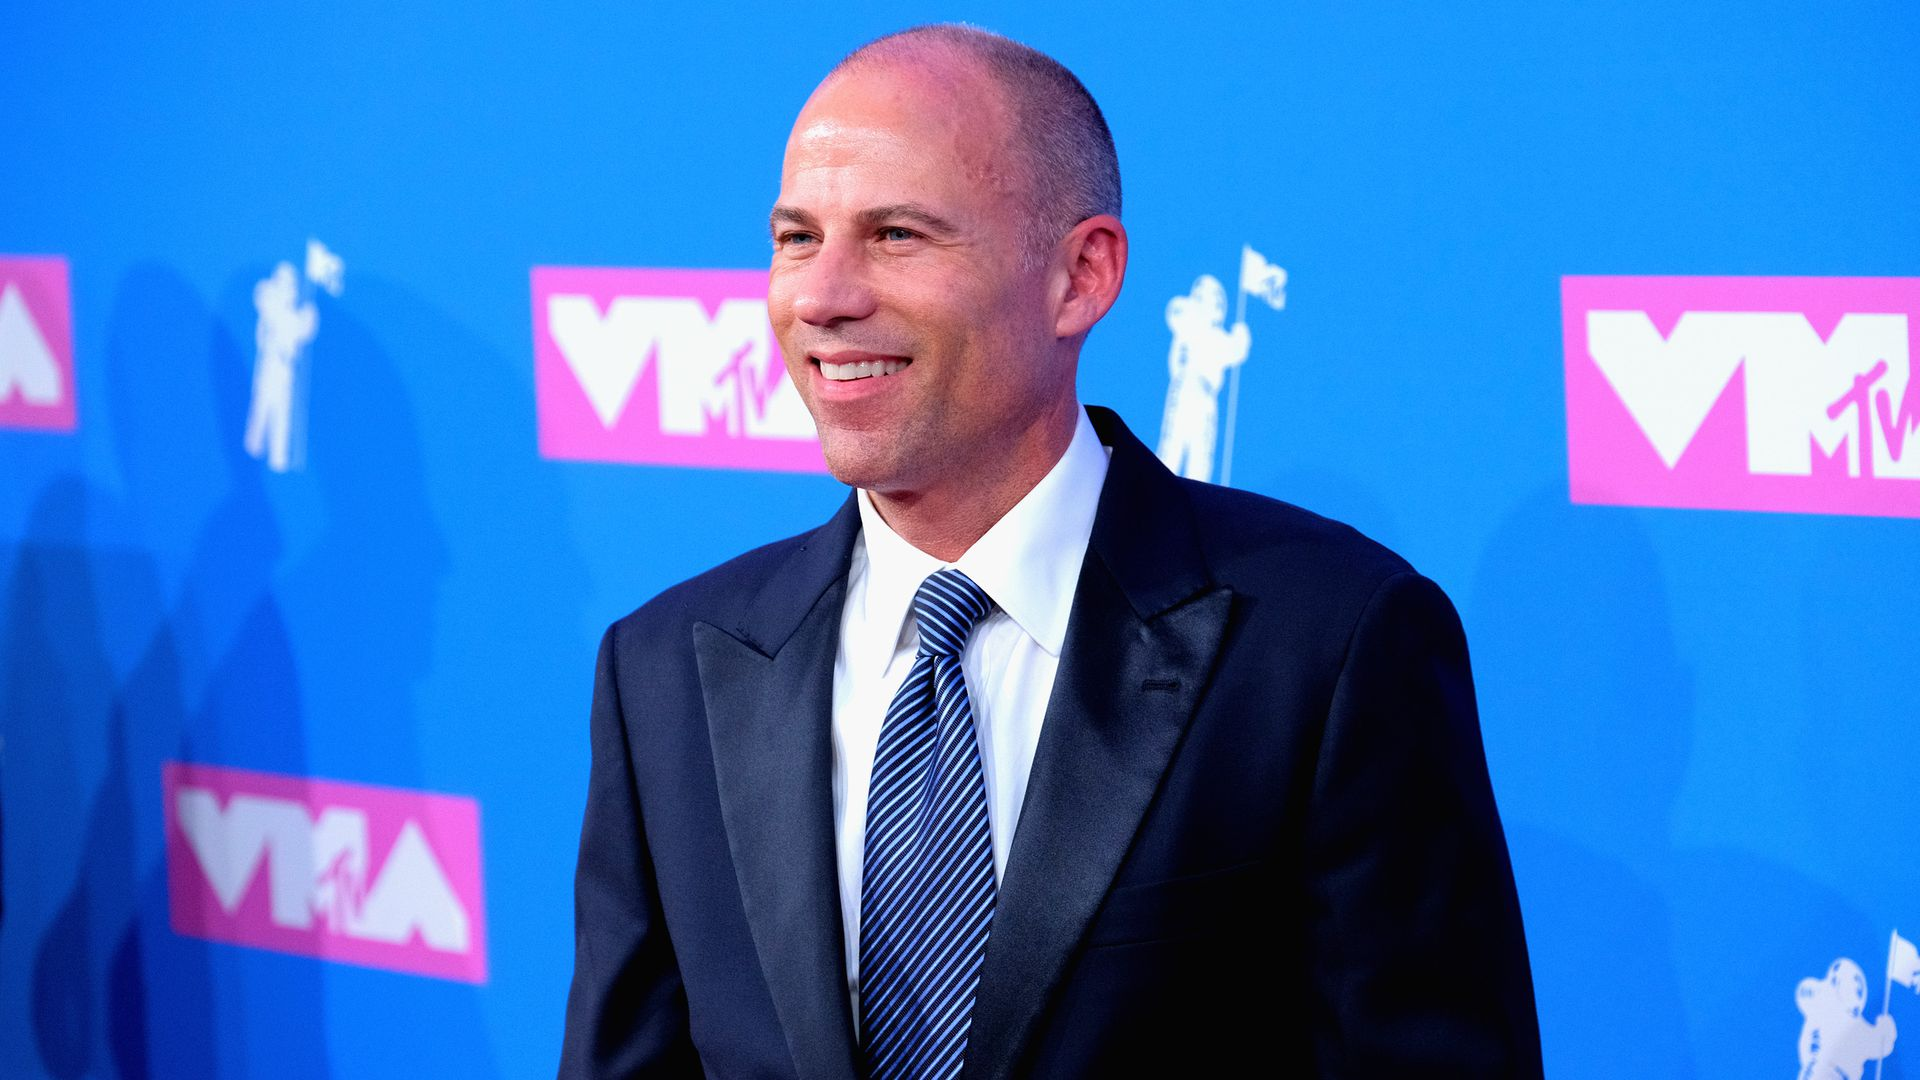 Michael Avenatti smiles on the pink carpet at the VMA's step and repeat